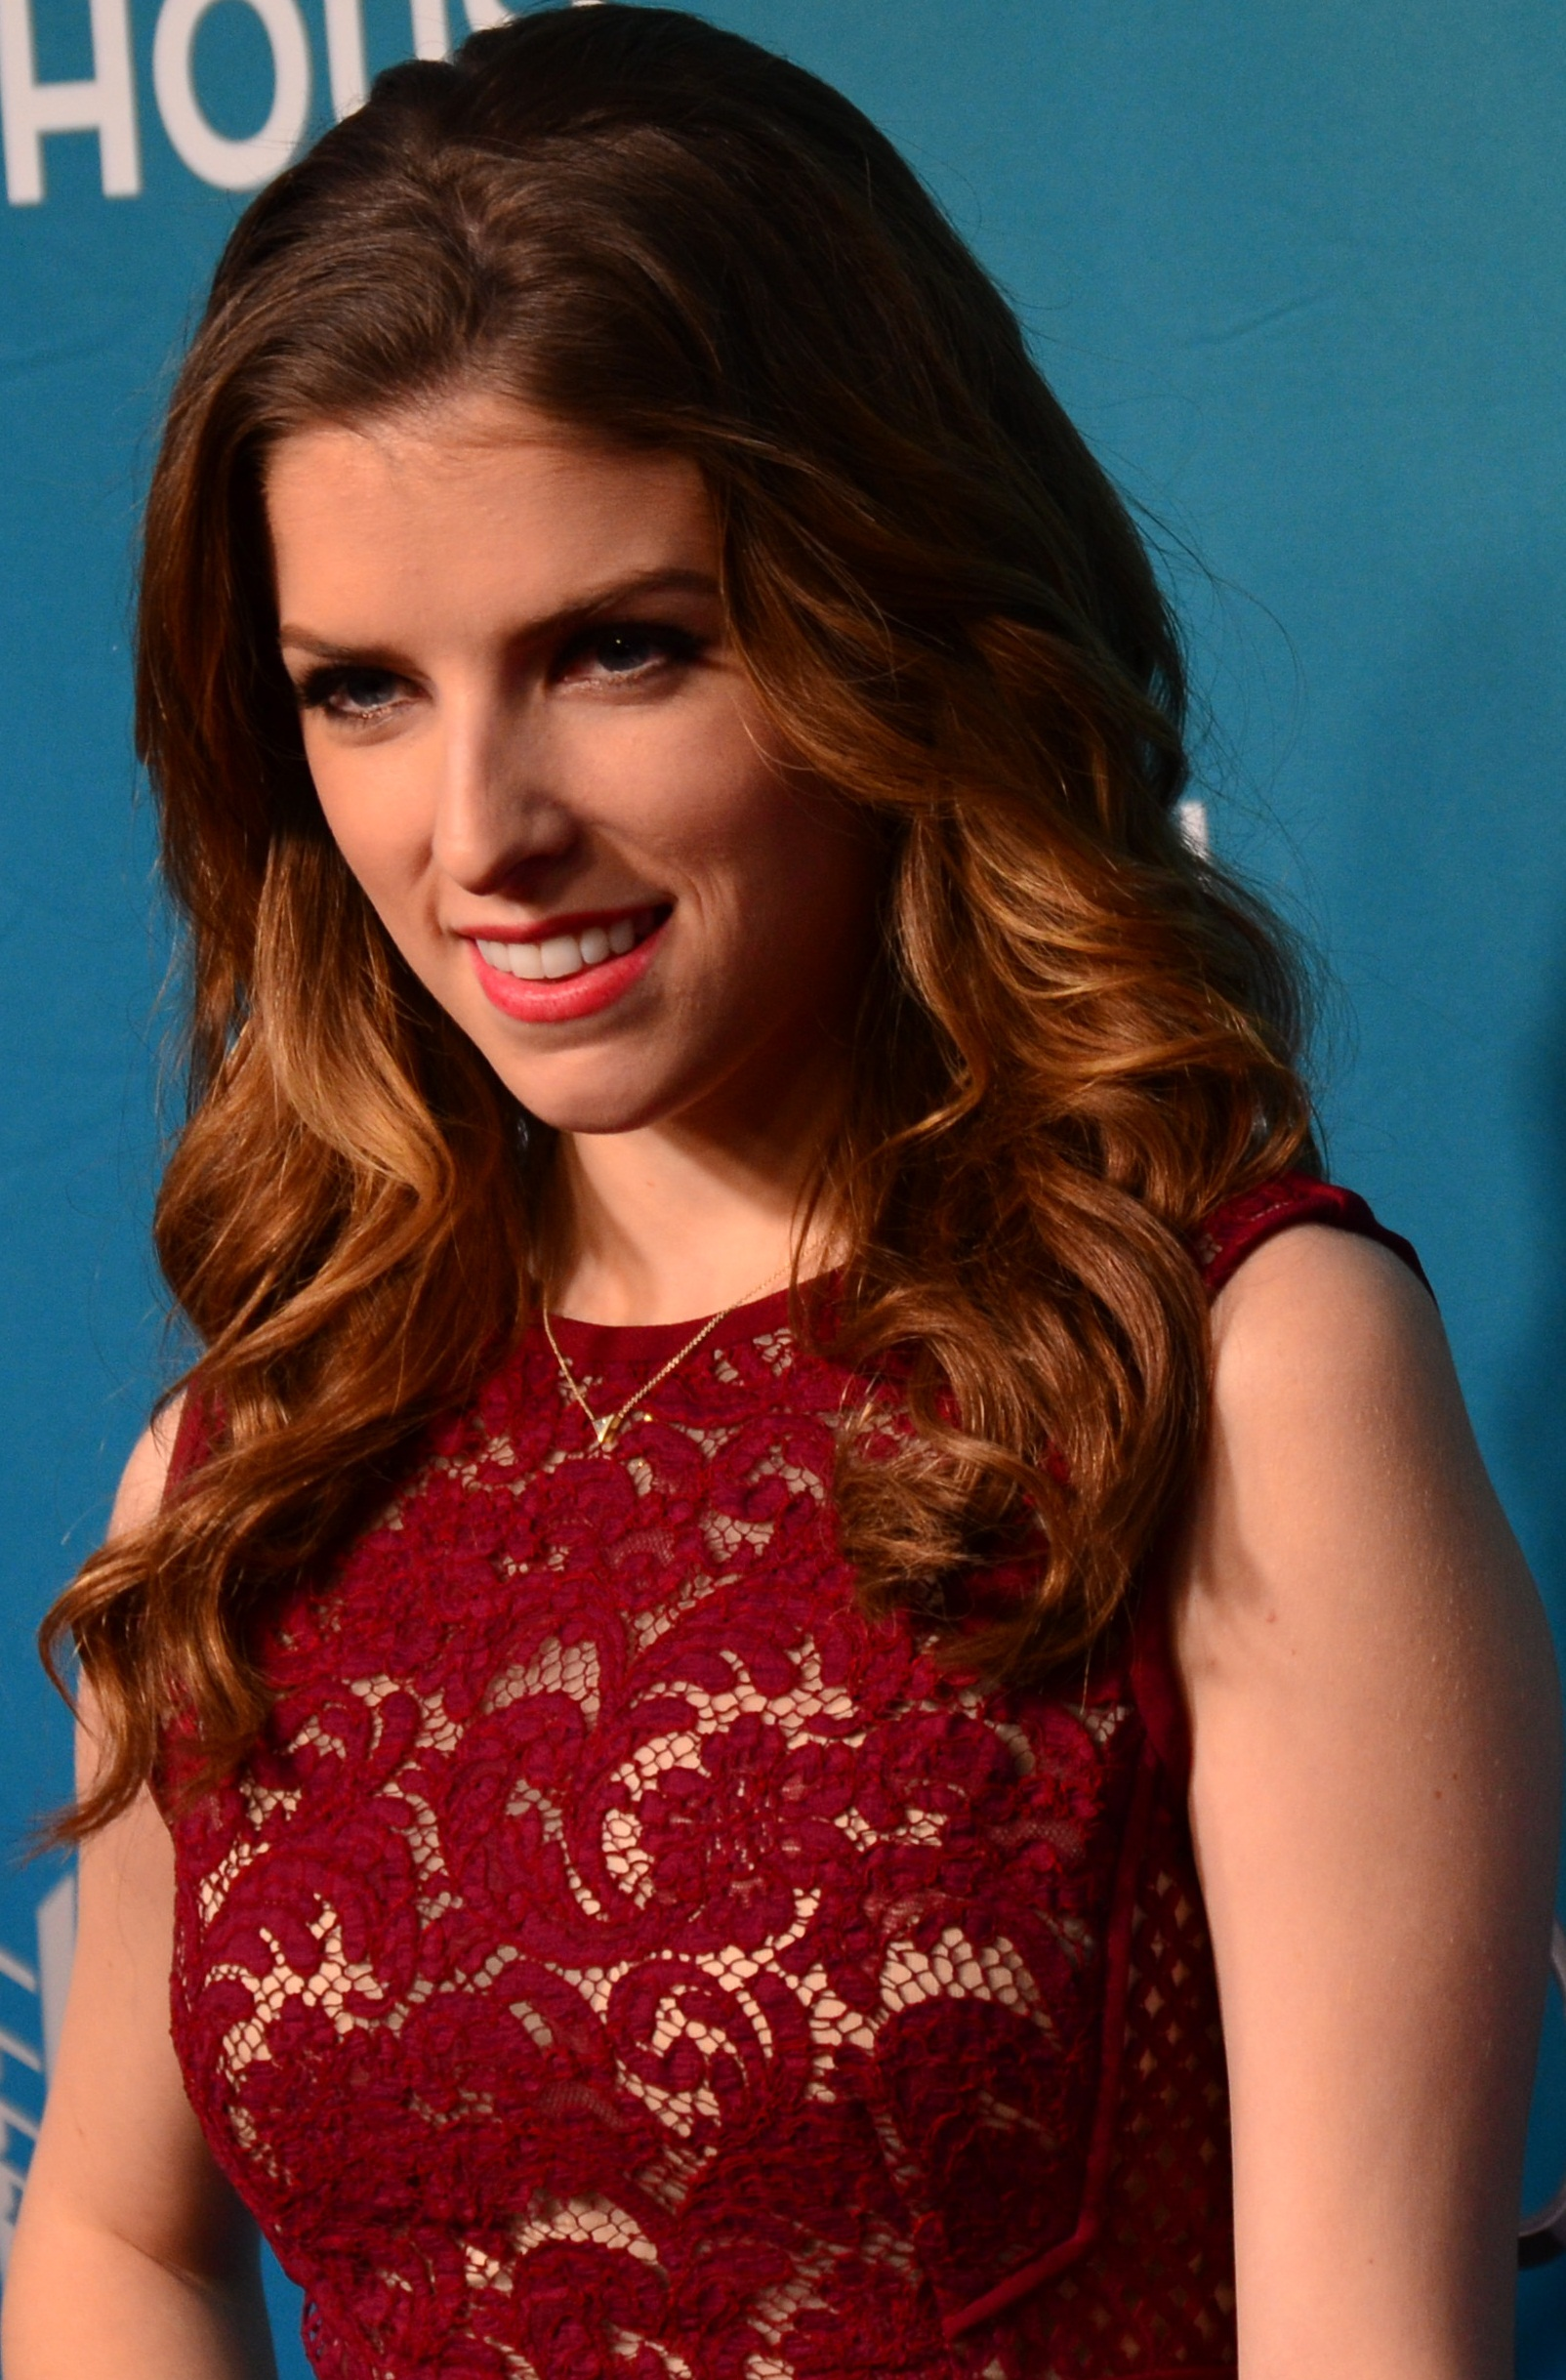 The 32-year old daughter of father William Kendrick and mother Janice Kendrick, 157 cm tall Anna Kendrick in 2017 photo